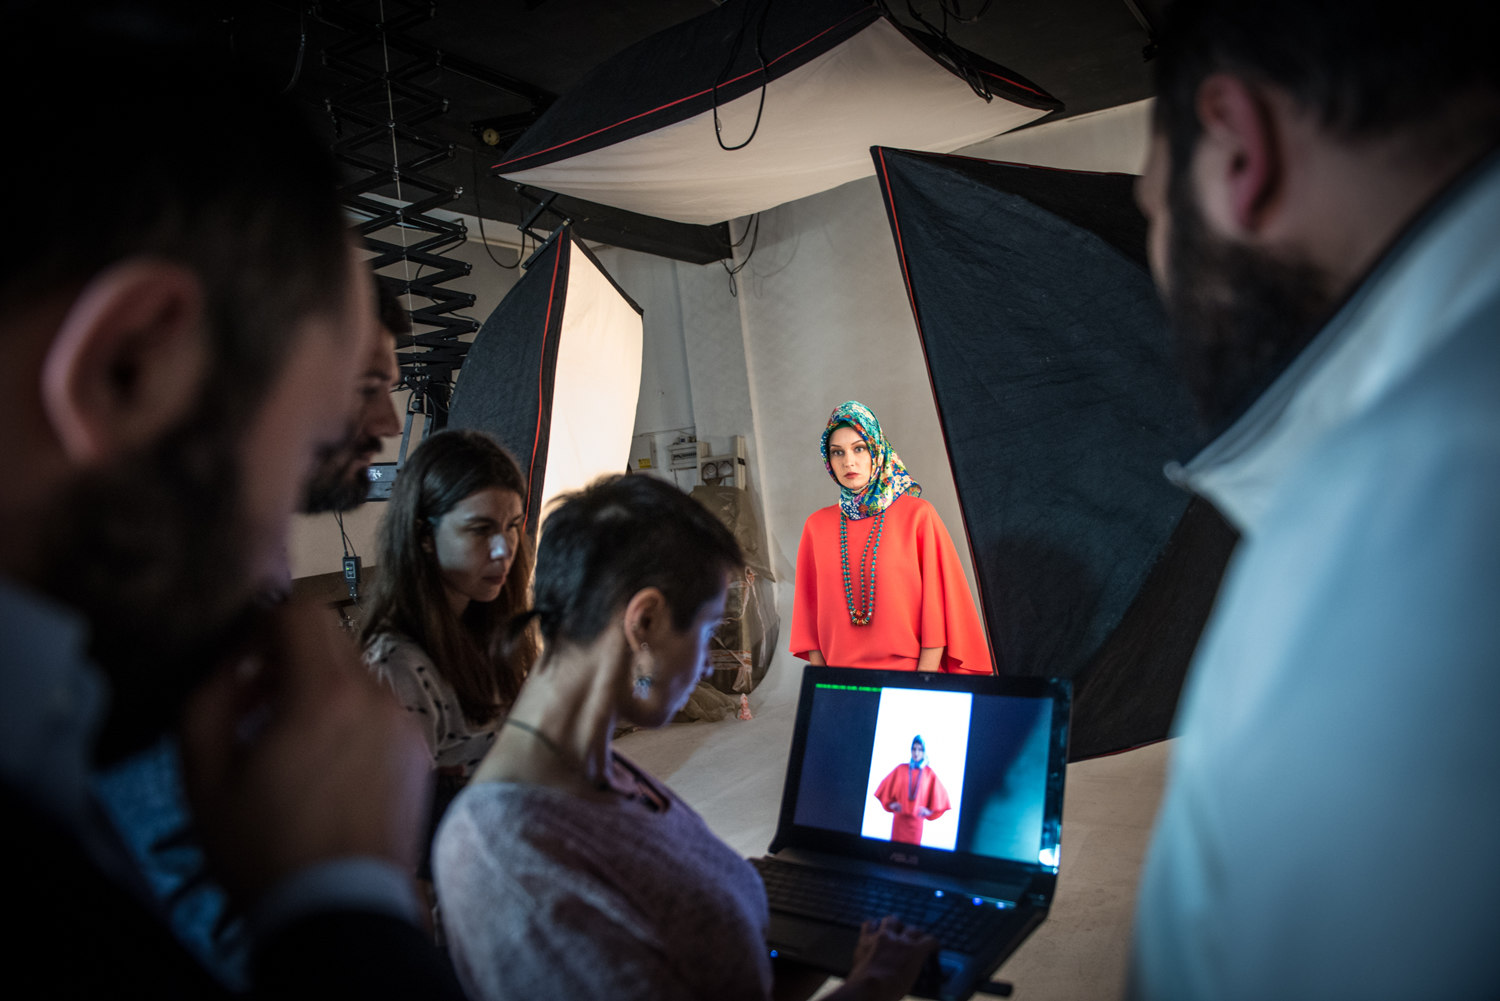 The photographer and editorial board of ALA magazine discuss an image that was an option for the cover. Scarves are pulled from a range of designers such as the domestic Armine to International brands such as Louis Vuitton and Hermes